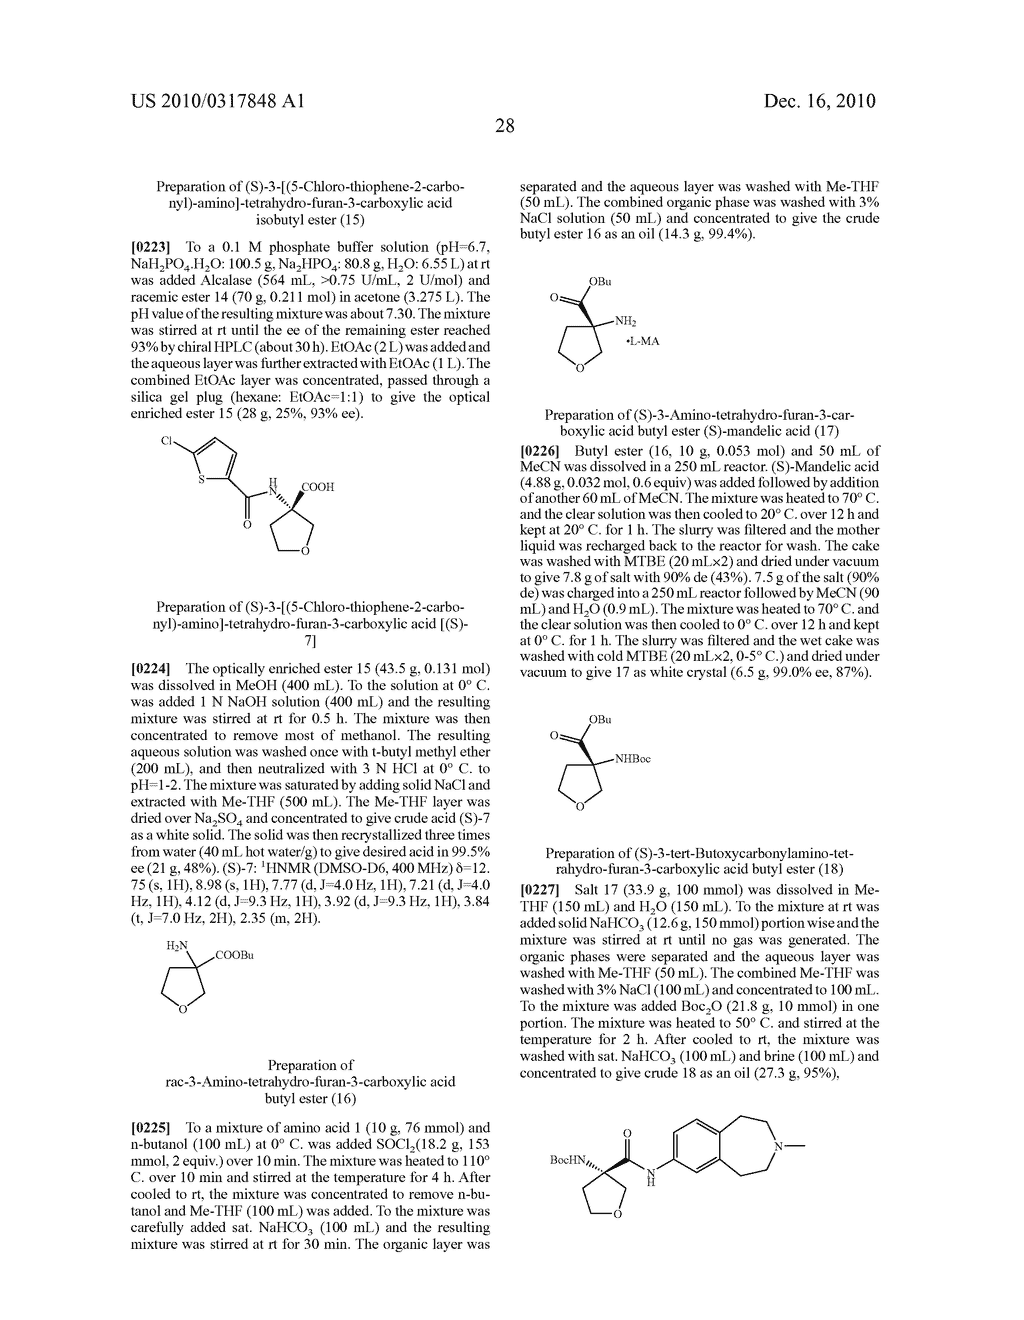 PROCESS FOR THE SYNTHESIS OF DERIVATIVES OF 3-AMINO-TETRAHYDROFURAN-3-CARBOXYLIC ACID AND USE THEREOF AS MEDICAMENTS - diagram, schematic, and image 33